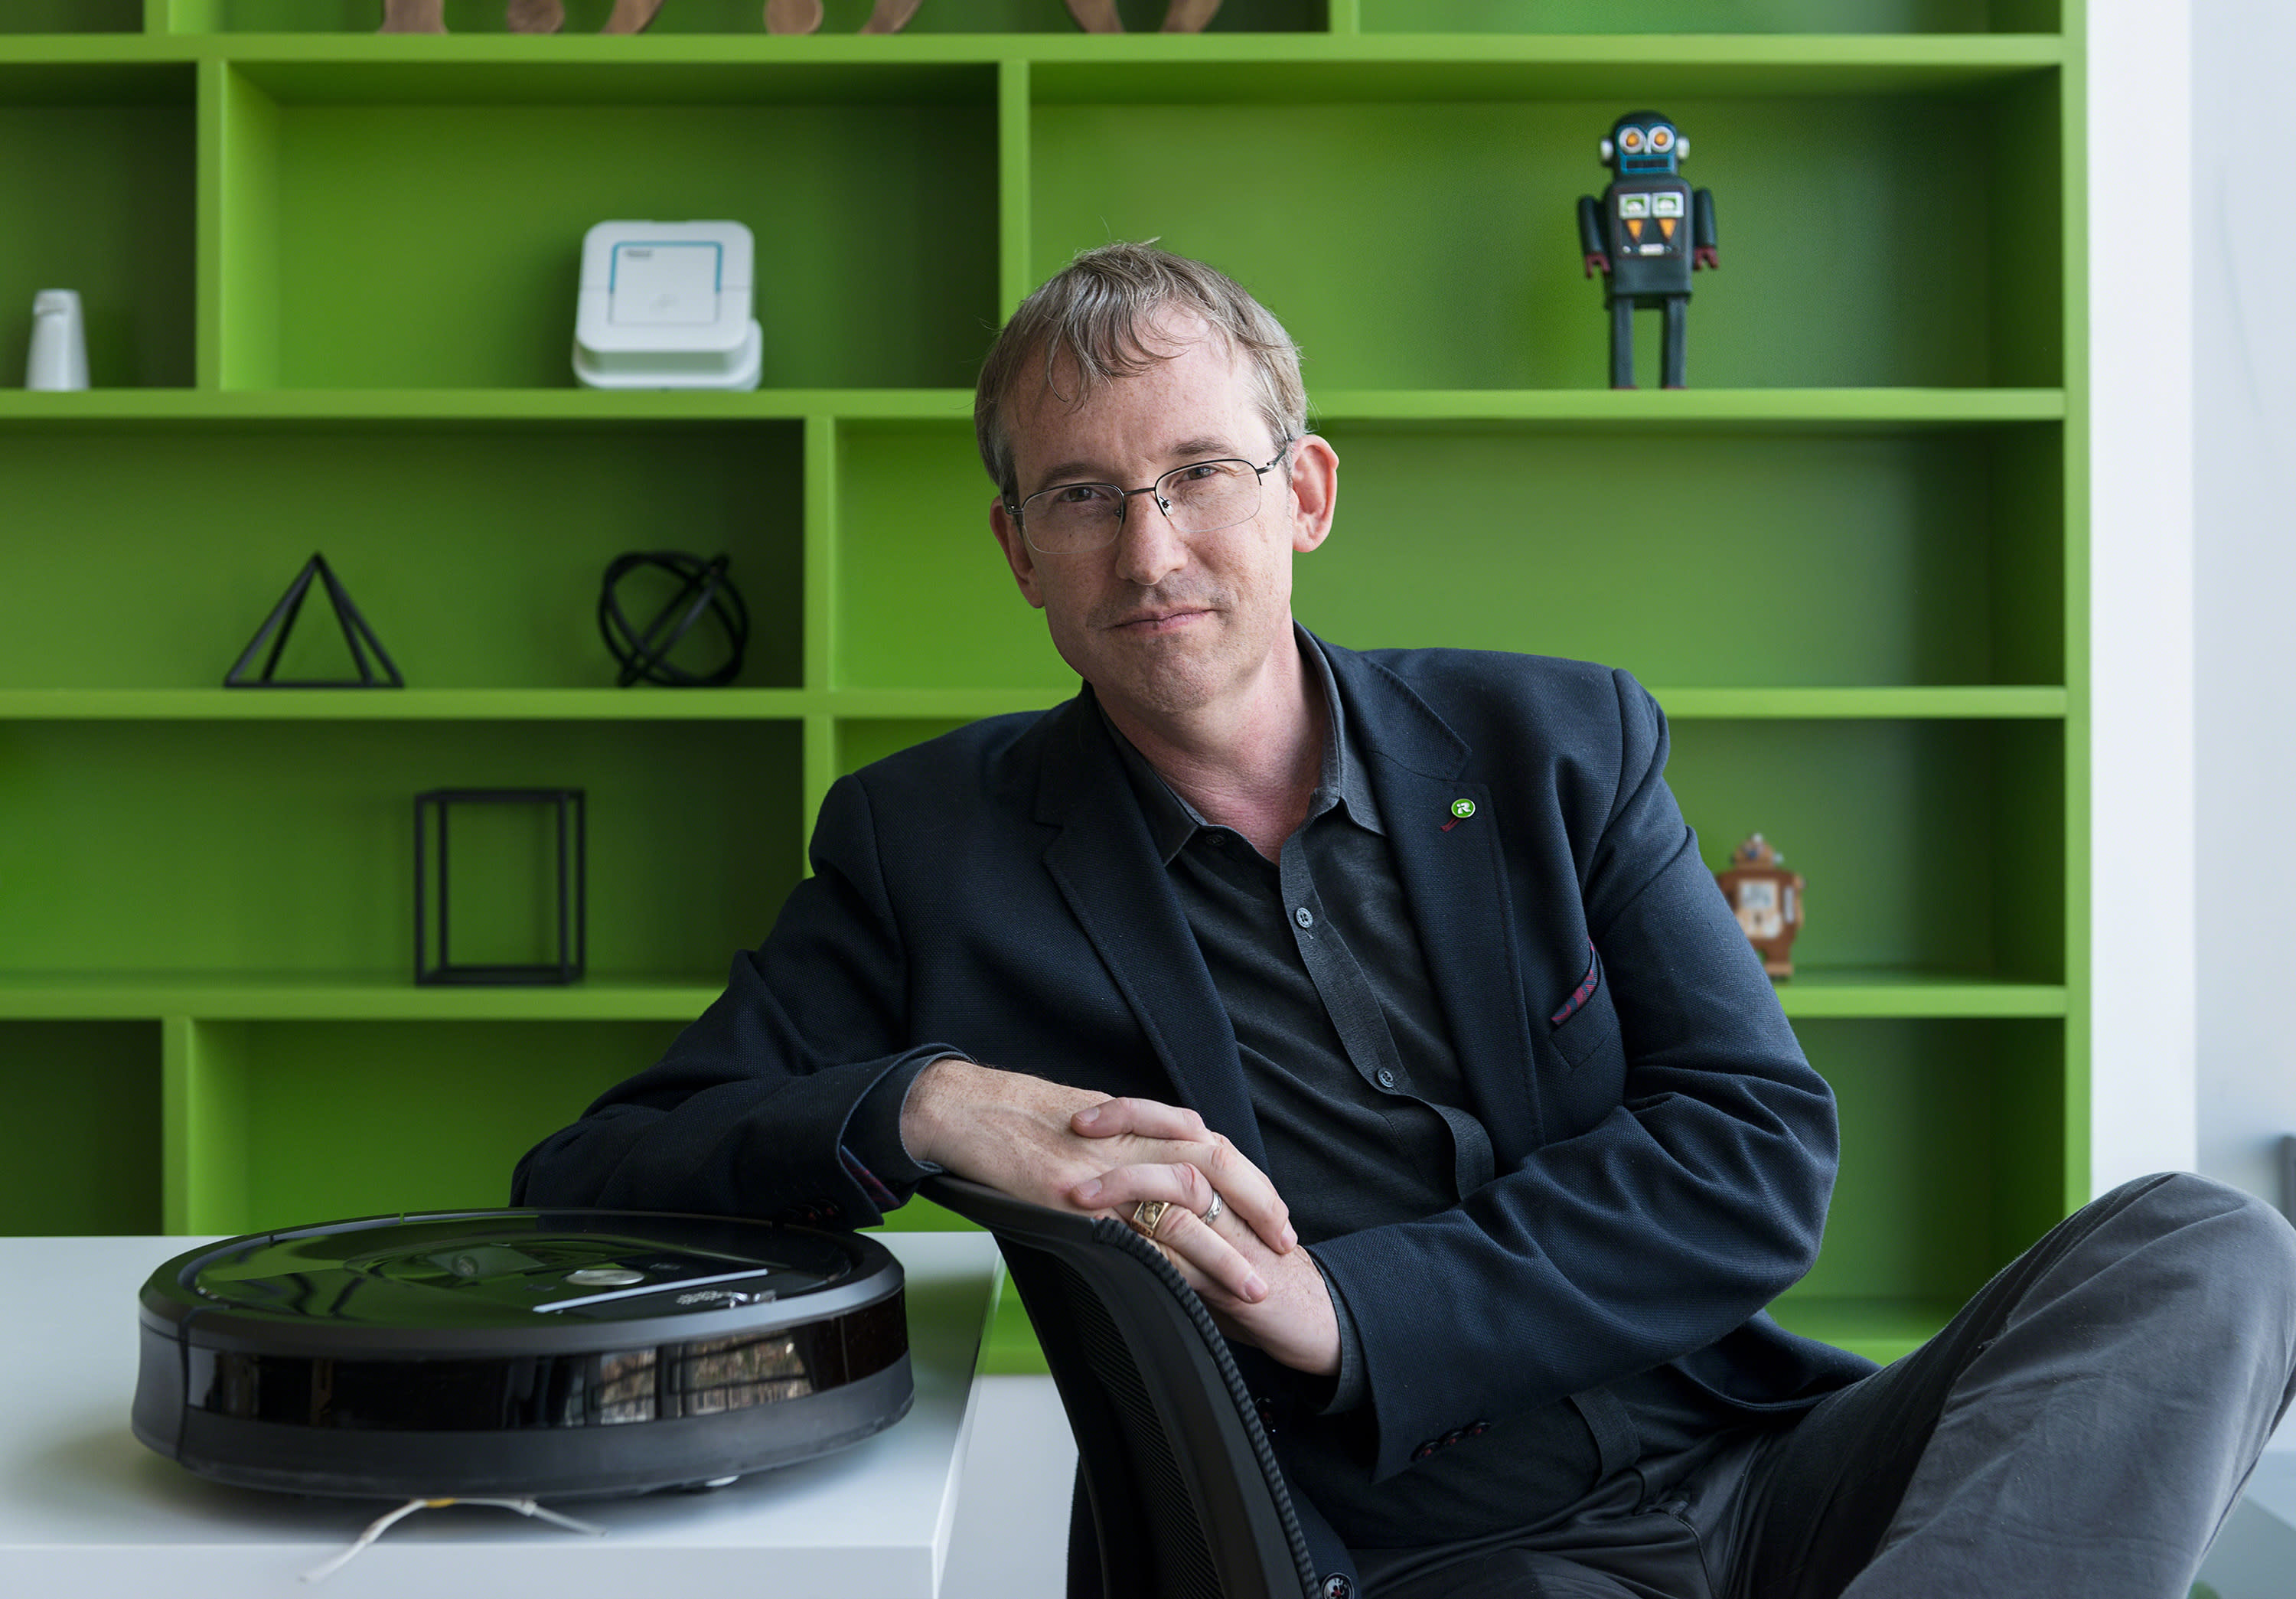 iRobot co-founder and CEO Colin Angle talks tariff troubles and data dilemmas